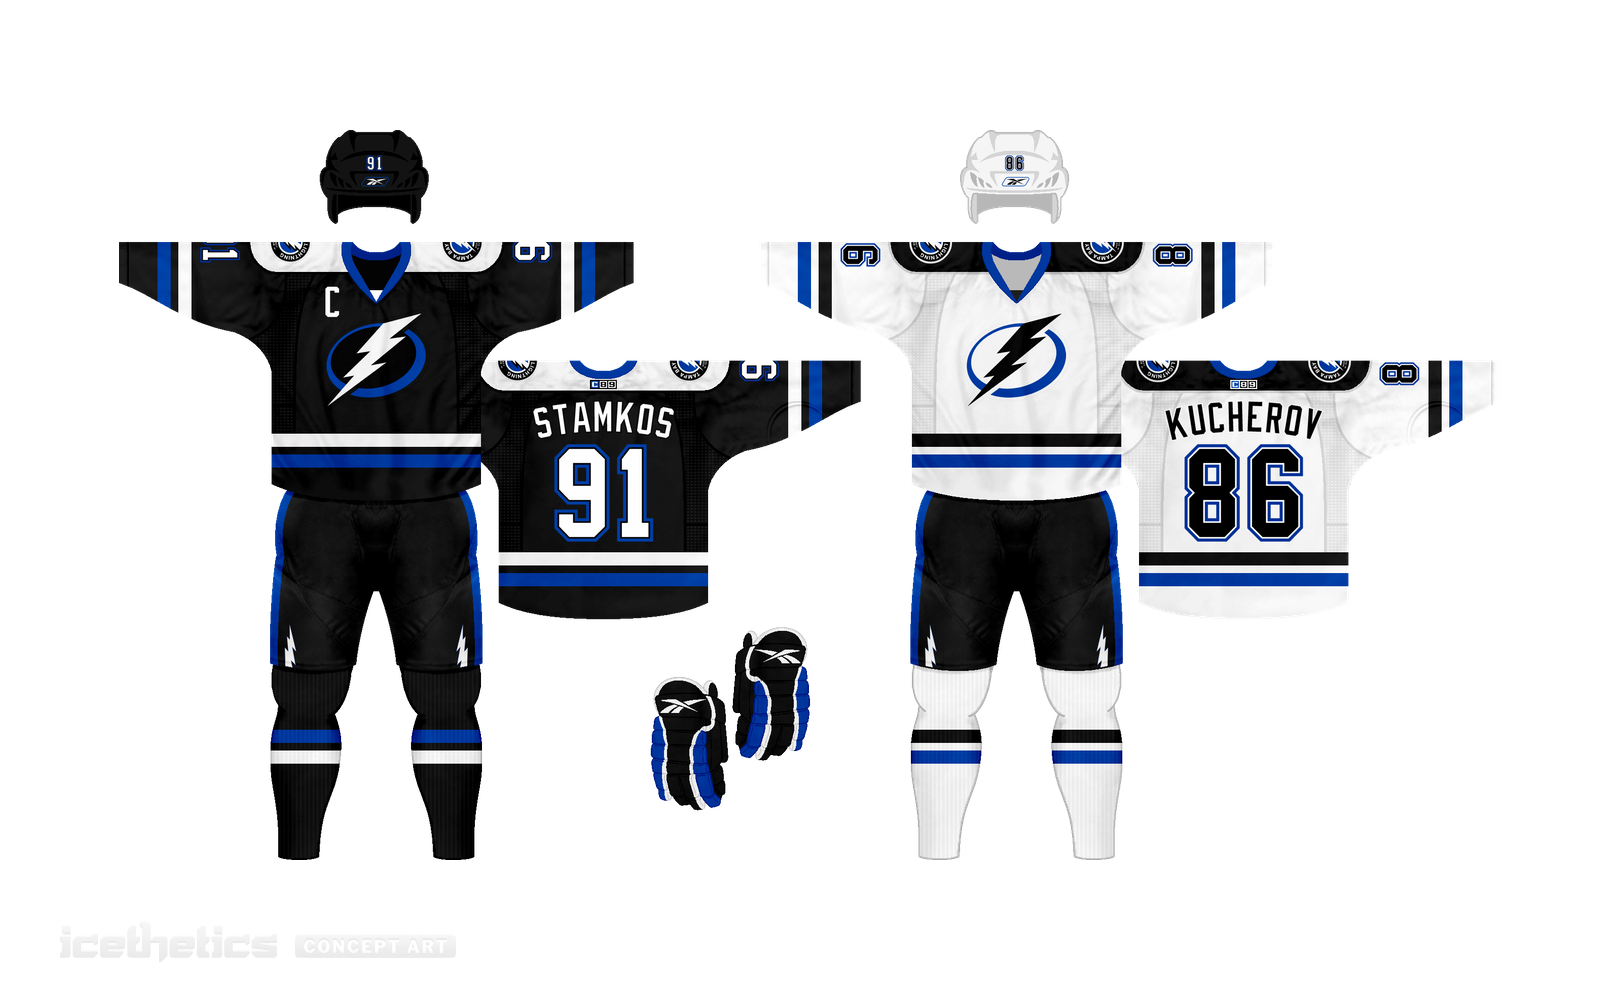 Back in Bolts Black